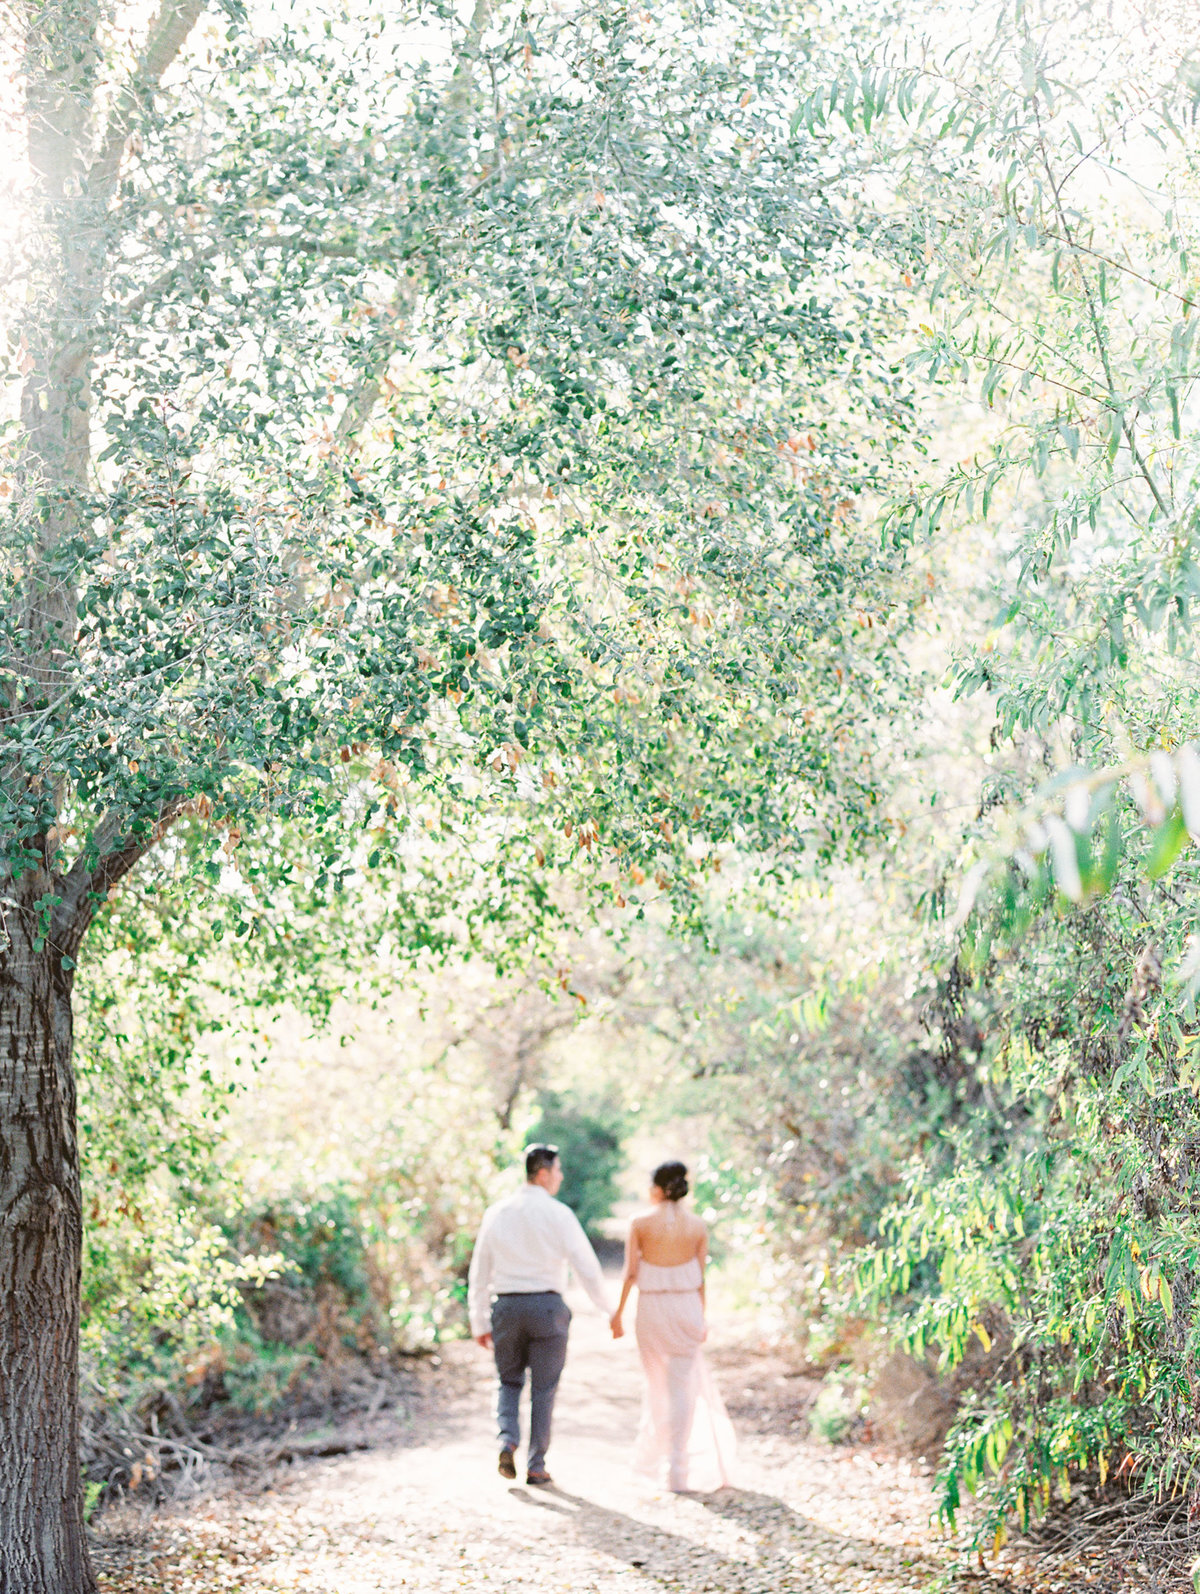 Babsie-Ly-Photography-Film-Engagement-at-the-park-nature-Orange-County-San-Diego-Stephanie-Tony-001